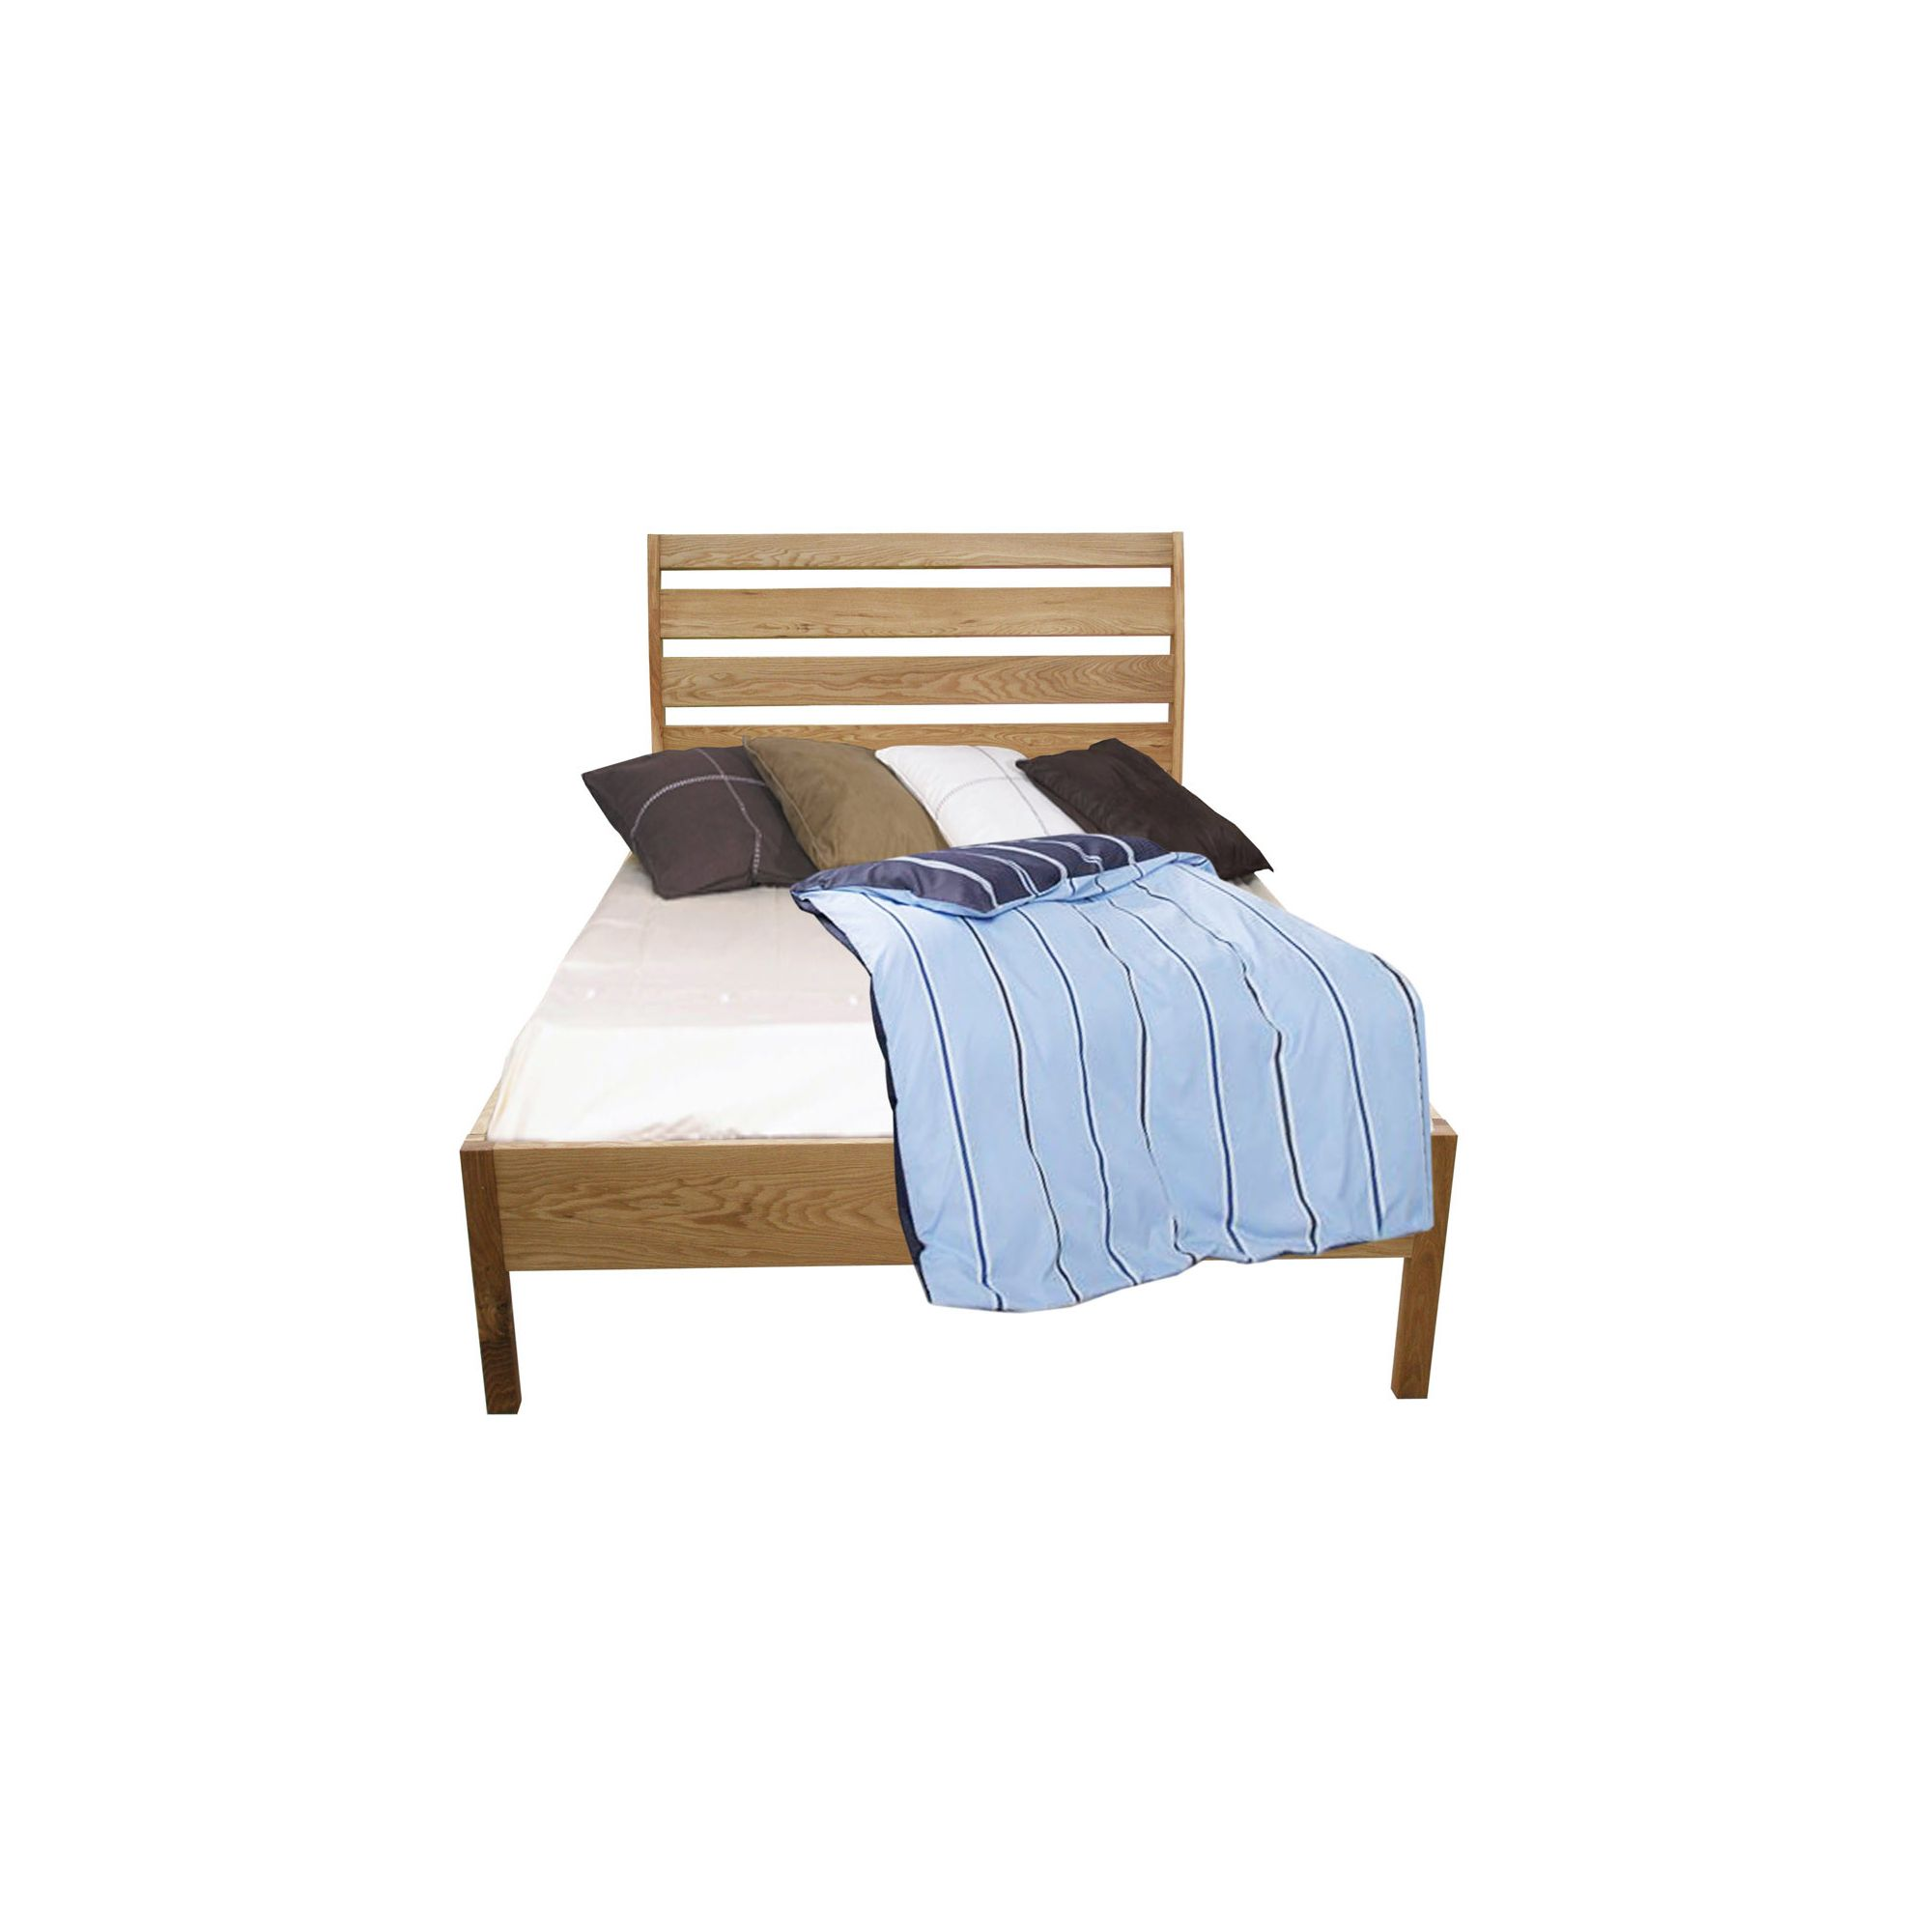 Home Zone Furniture Churchill Bed Frame - Double at Tesco Direct